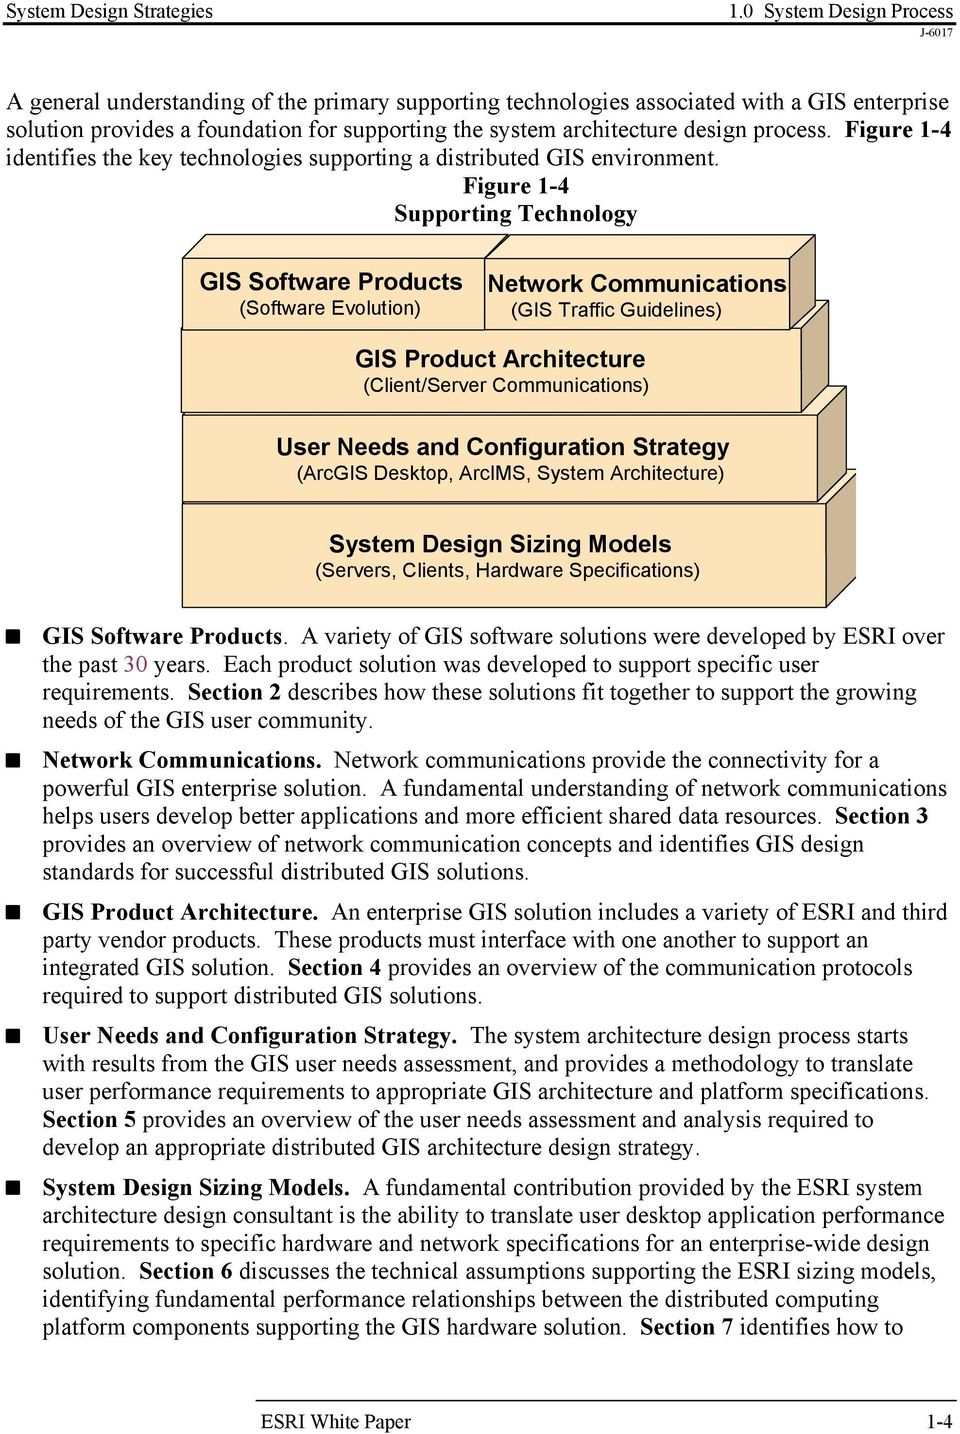 process. Figure 1-4 identifies the key technologies supporting a distributed GIS environment.